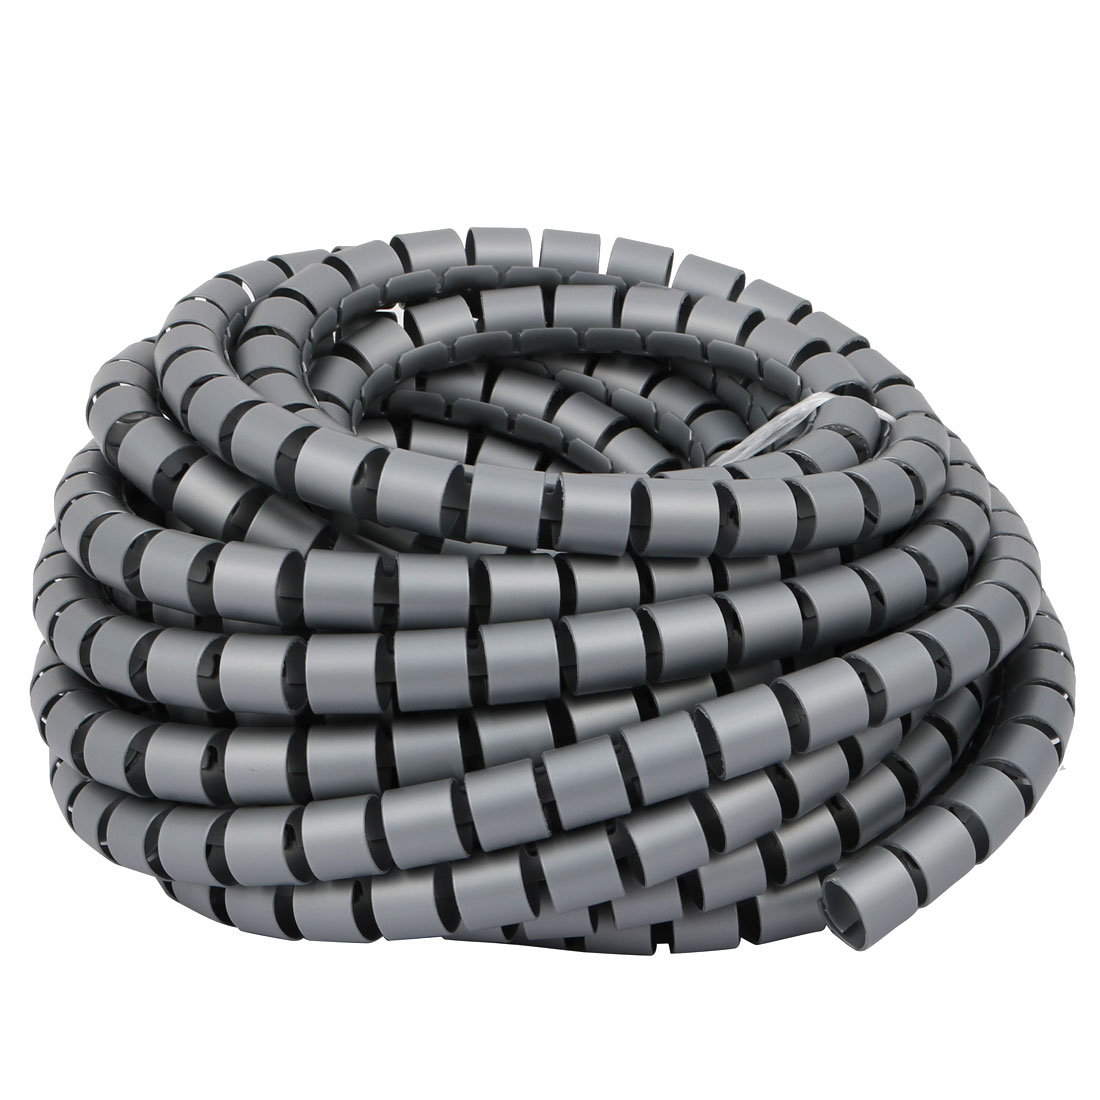 Unique Bargains Flexible Spiral Tube Cable Wire Wrap Gray 15mm Dia x 8.5 Meter Long with Clip